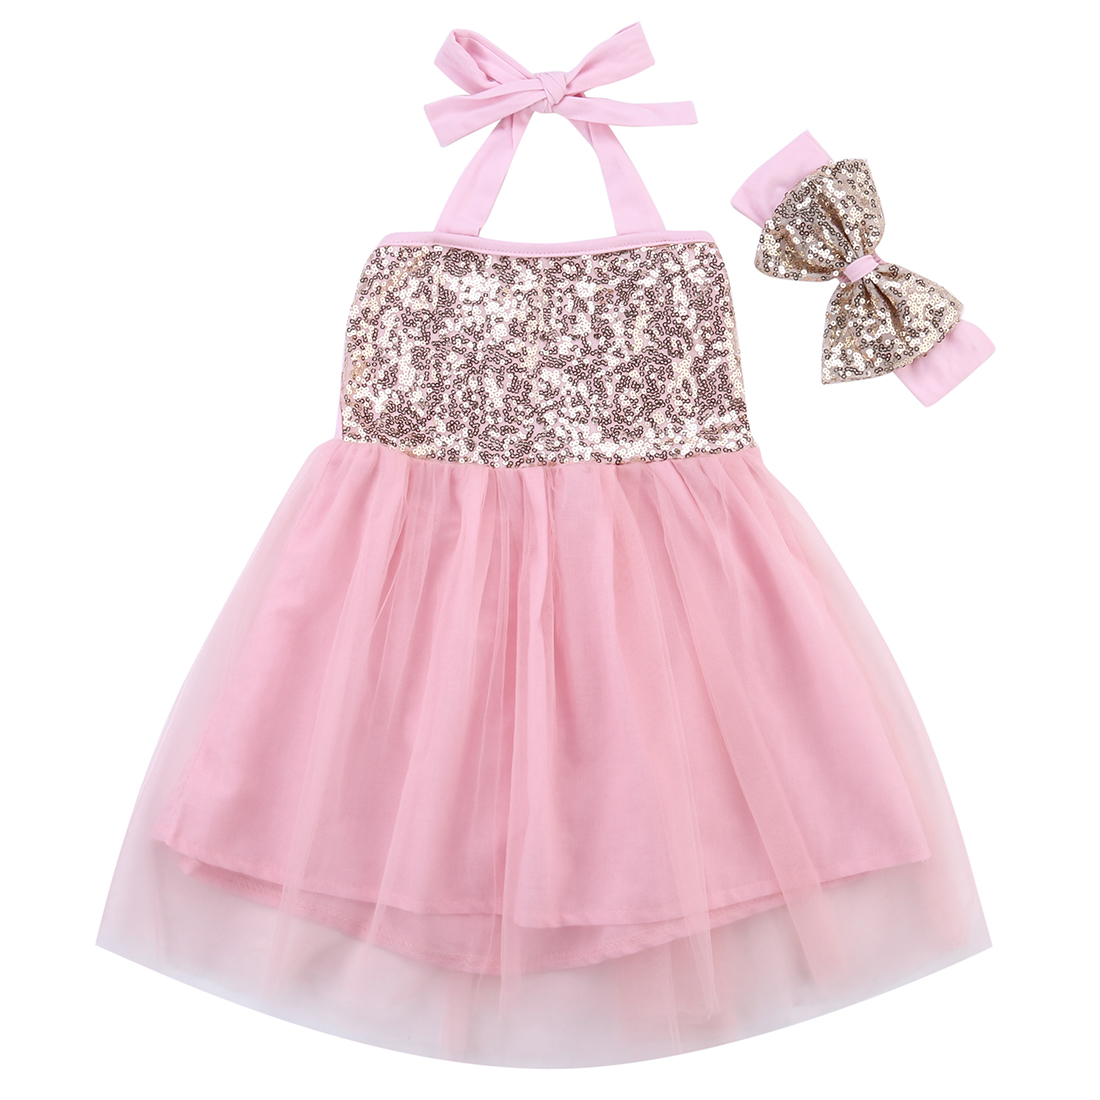 Newborn Toddler Kids Baby Girls Lace Sequins Sleeveless Belted Tulle Dress +Bow Headband 2Pcs Clothes Outfit